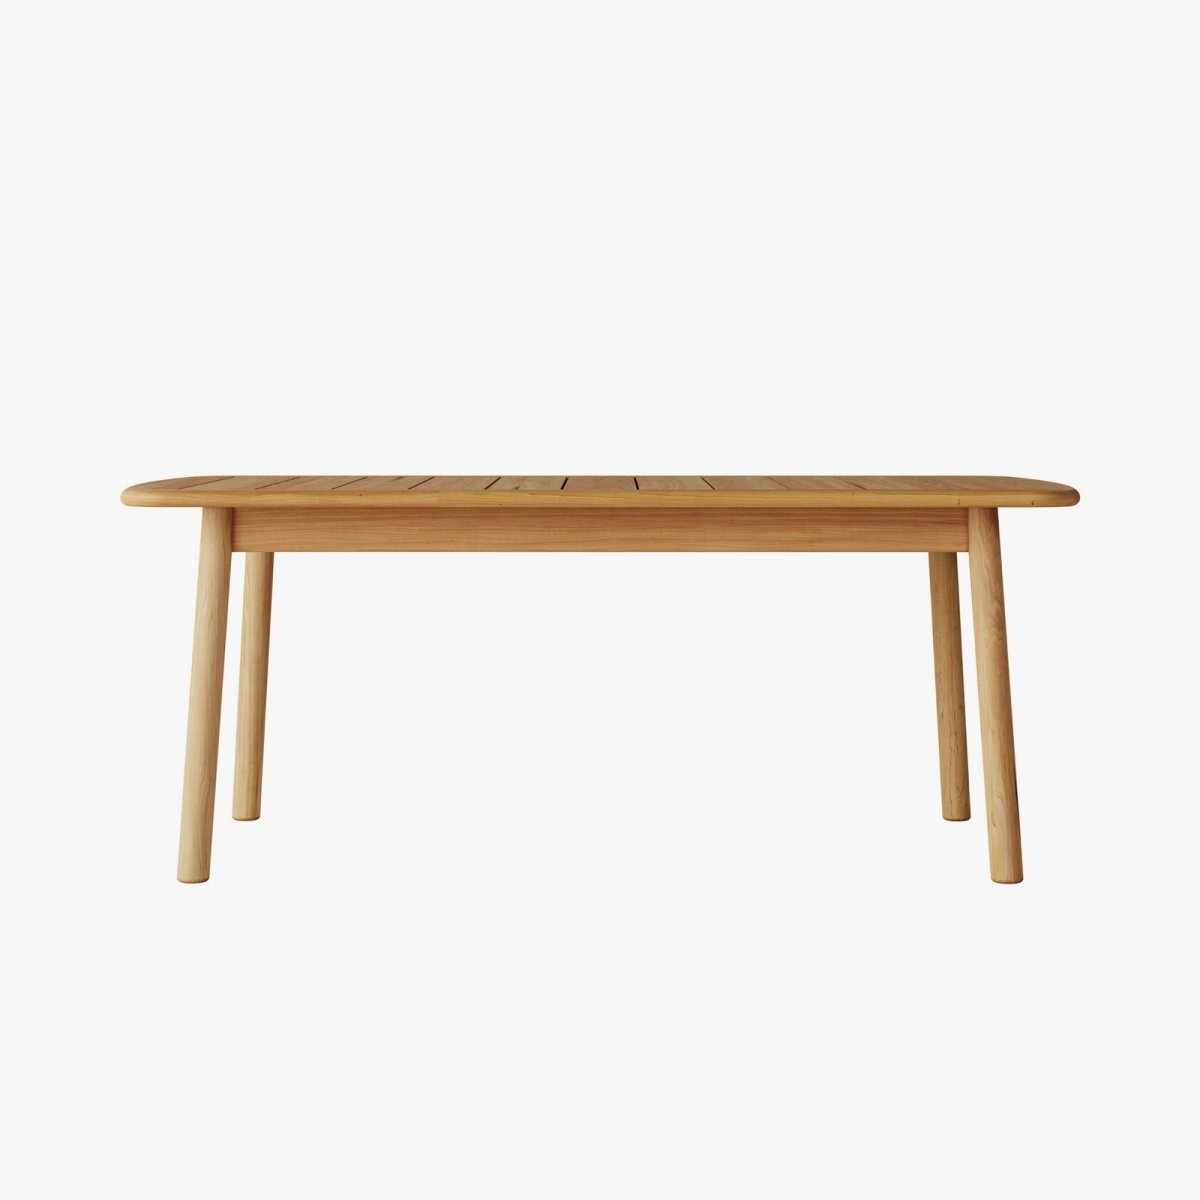 Tanso Rectangular Table, small.